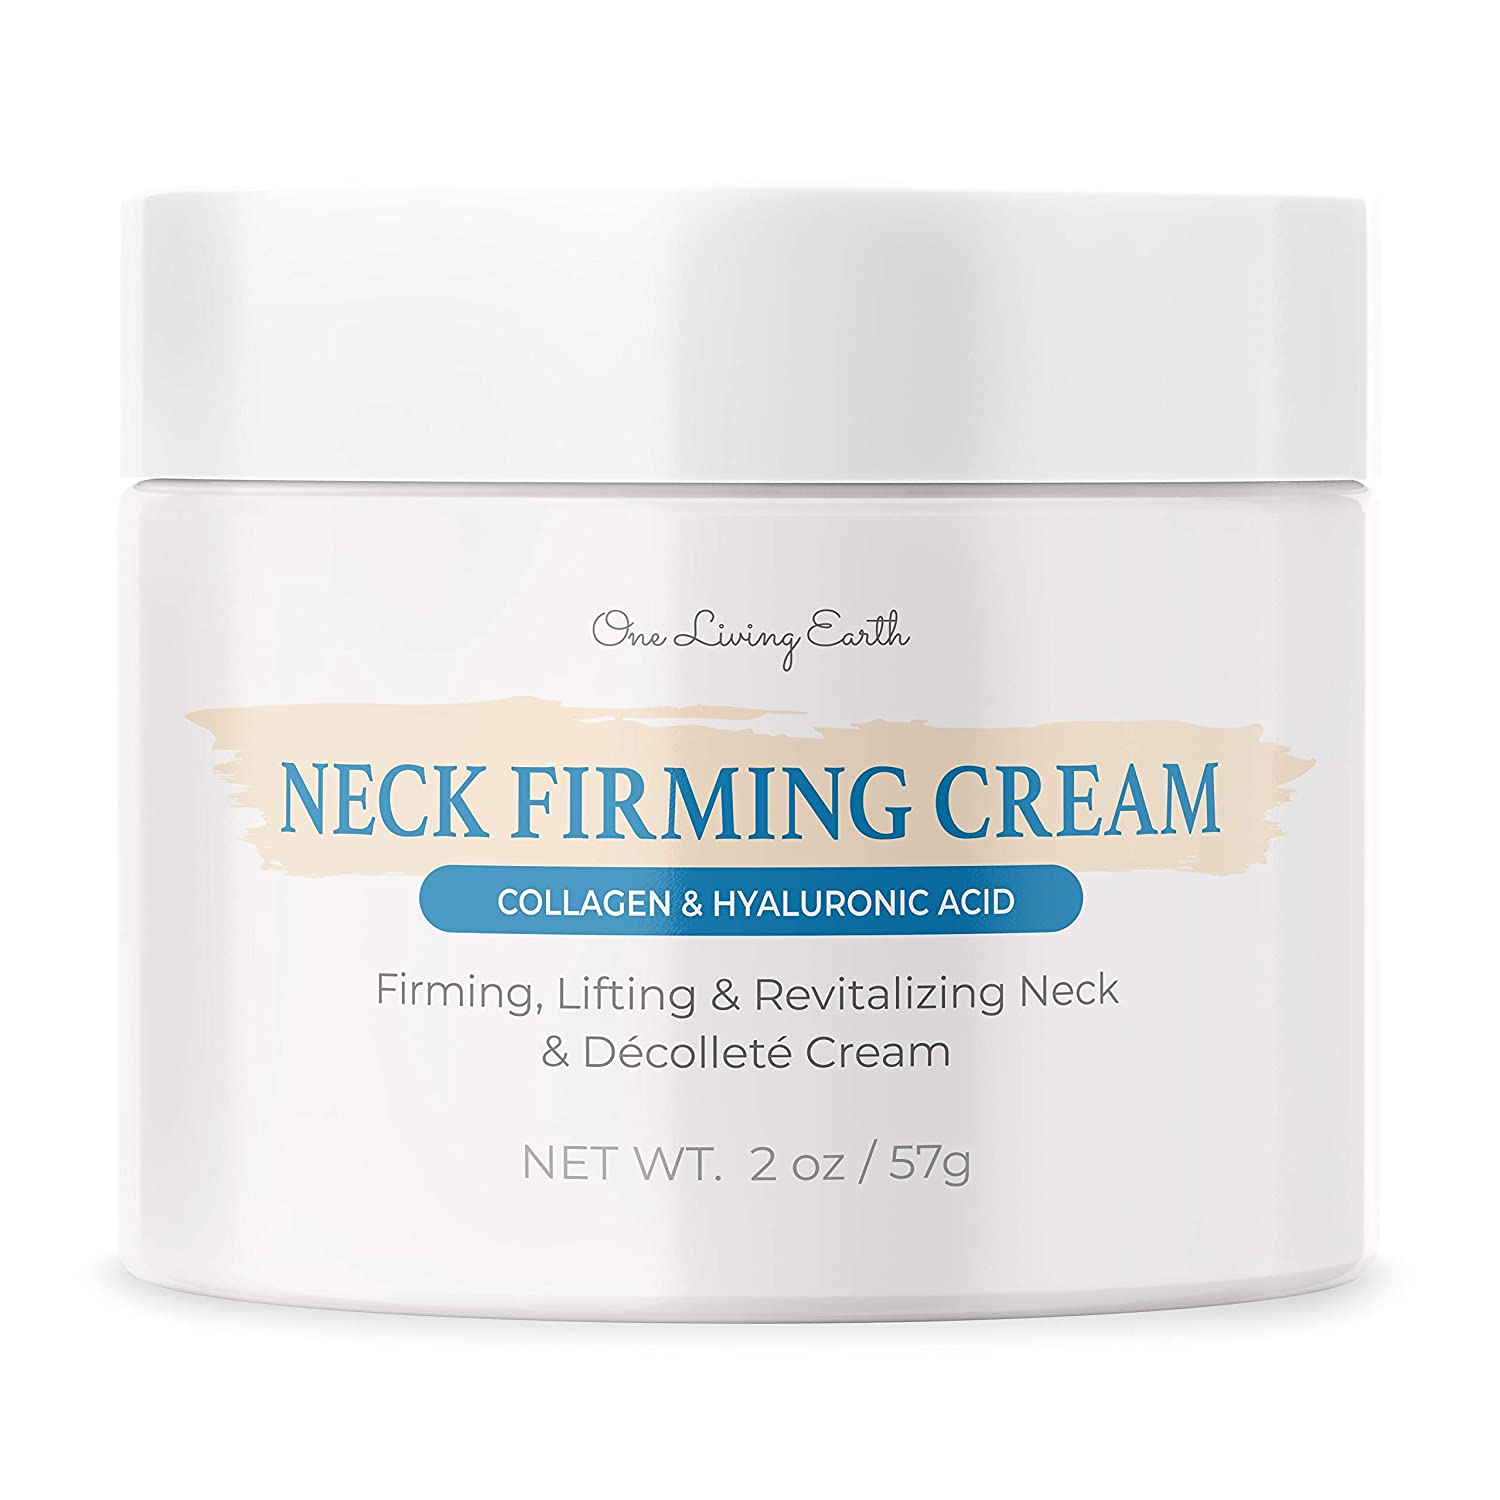 One Living Earth Neck Firming Cream - Anti Aging with Collagen, Hyaluronic Acid & Retinol - Saggy Neck Skin Tightener for Double Chin - Neck & Décolleté Moisturizer - 2 fl oz